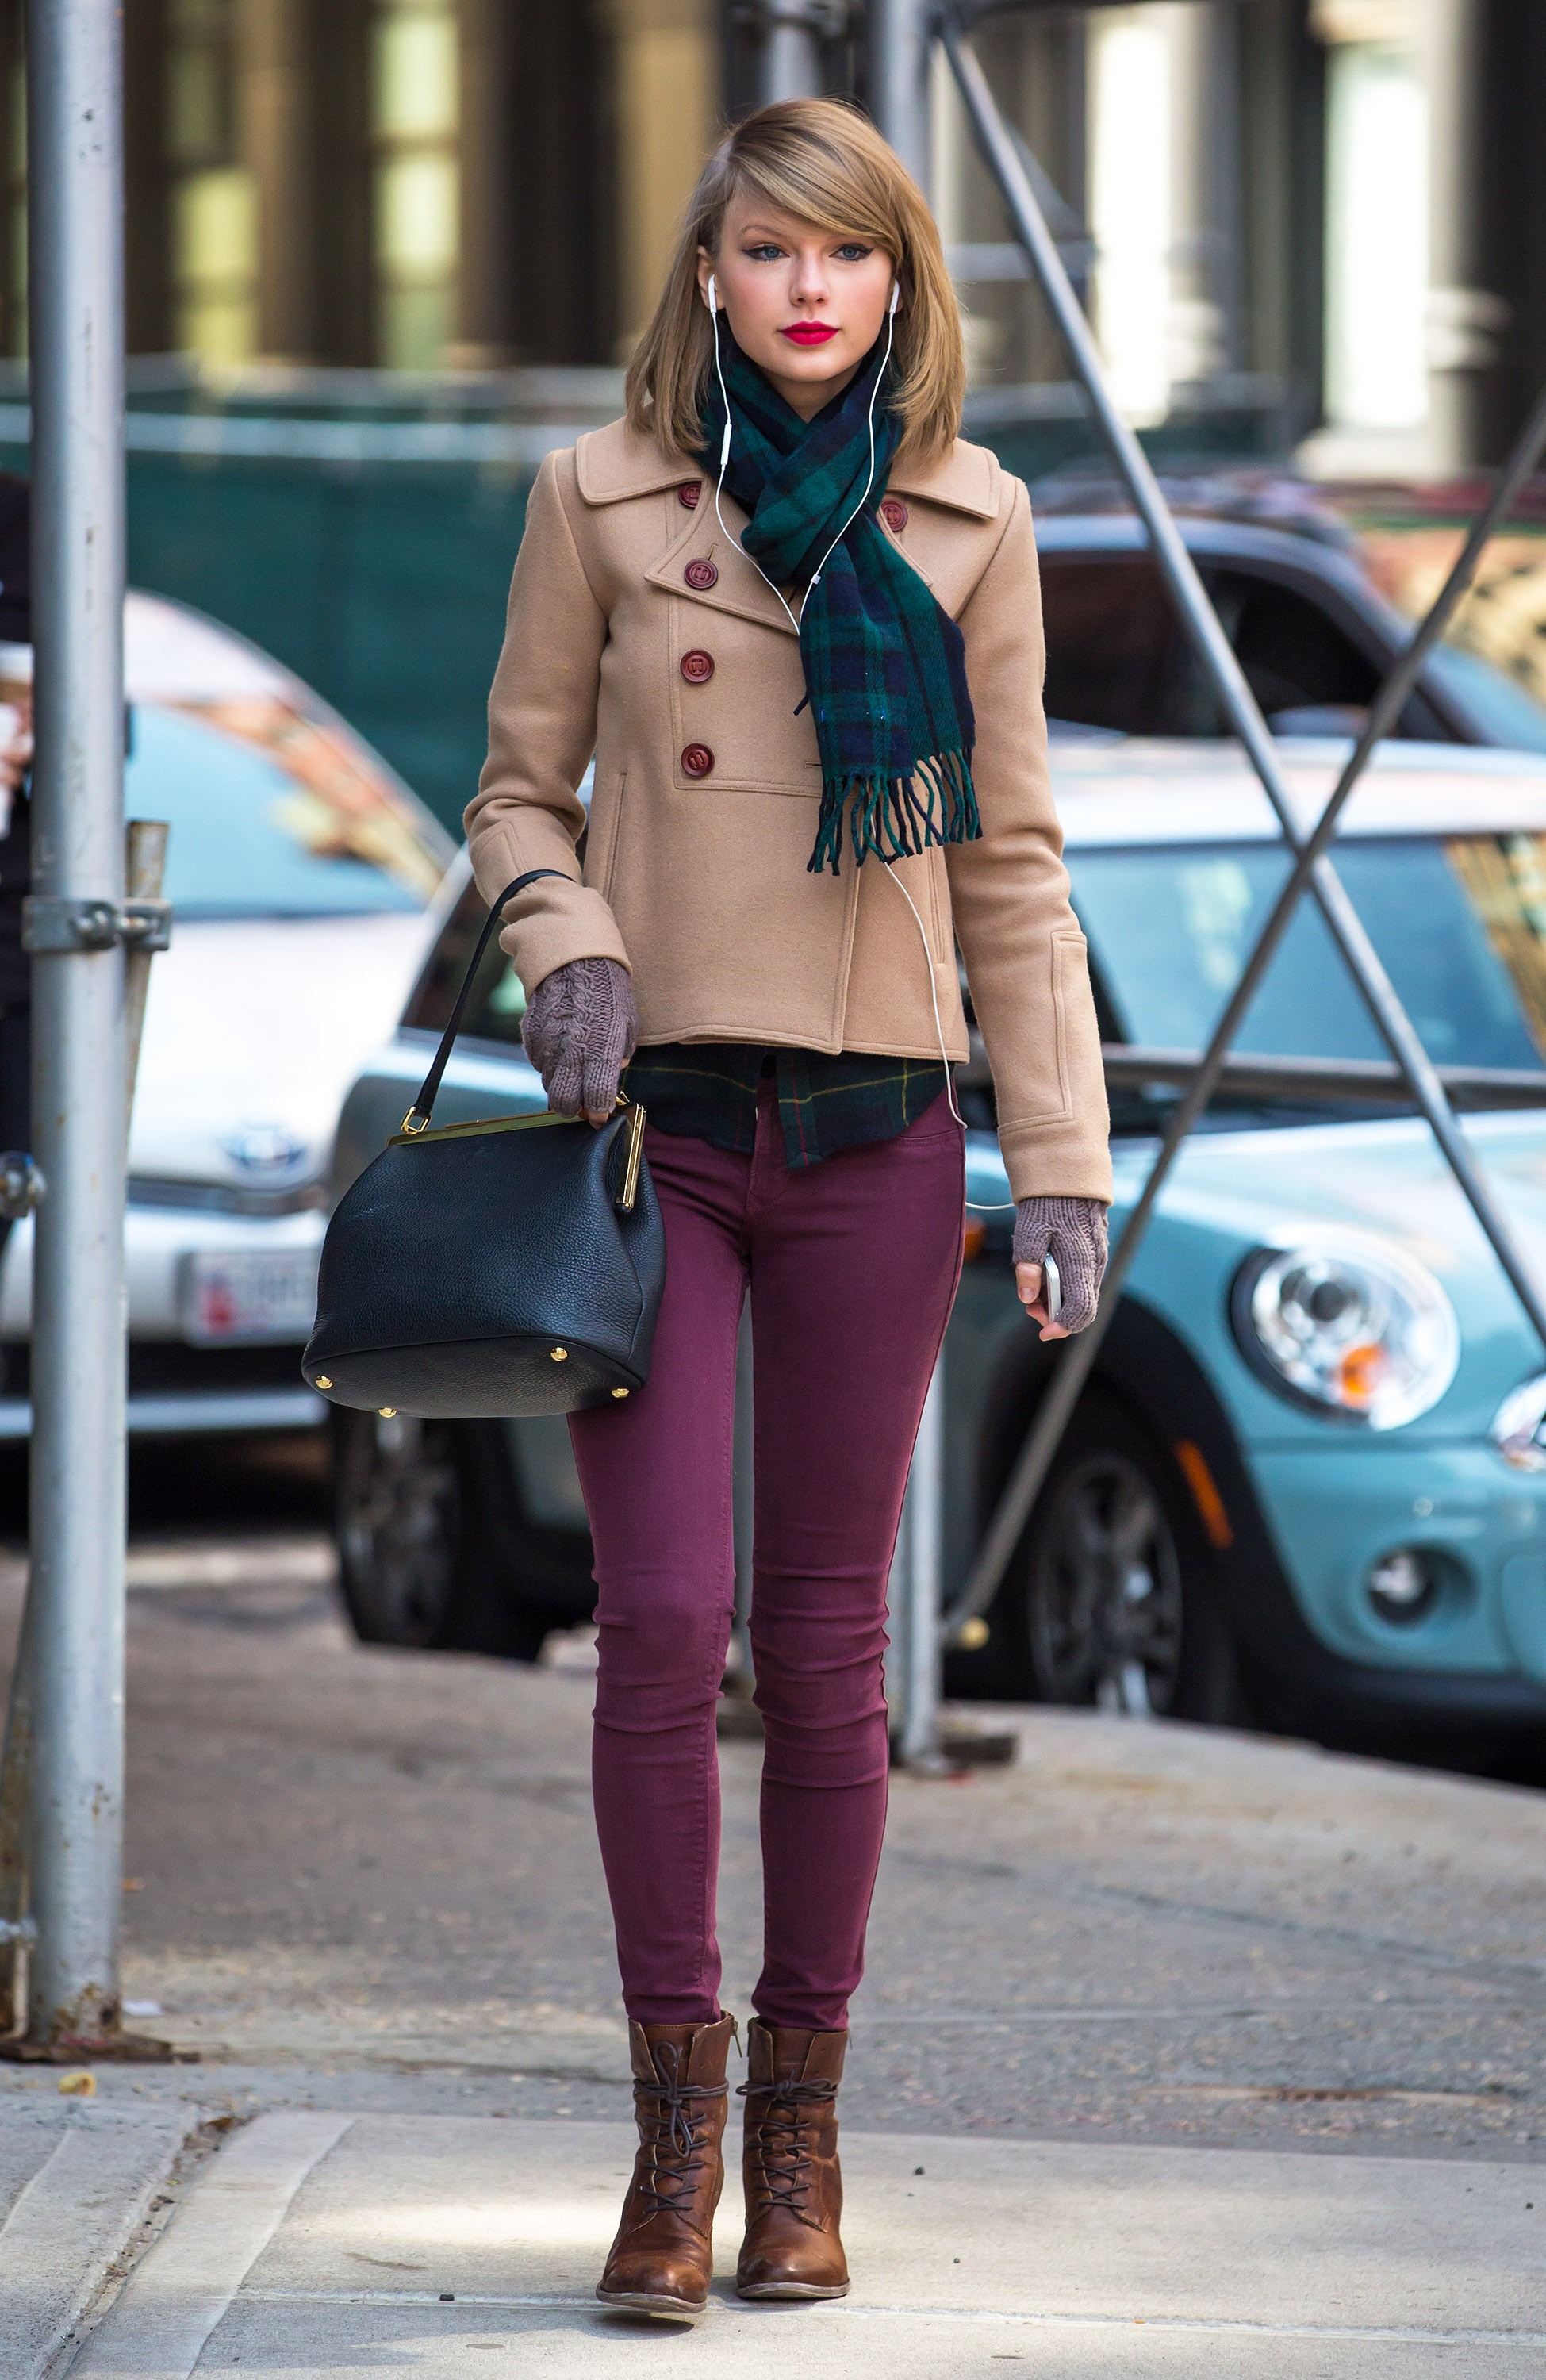 Taylor Swift Brings Touch Of Spring To Cold NYC Streets ...